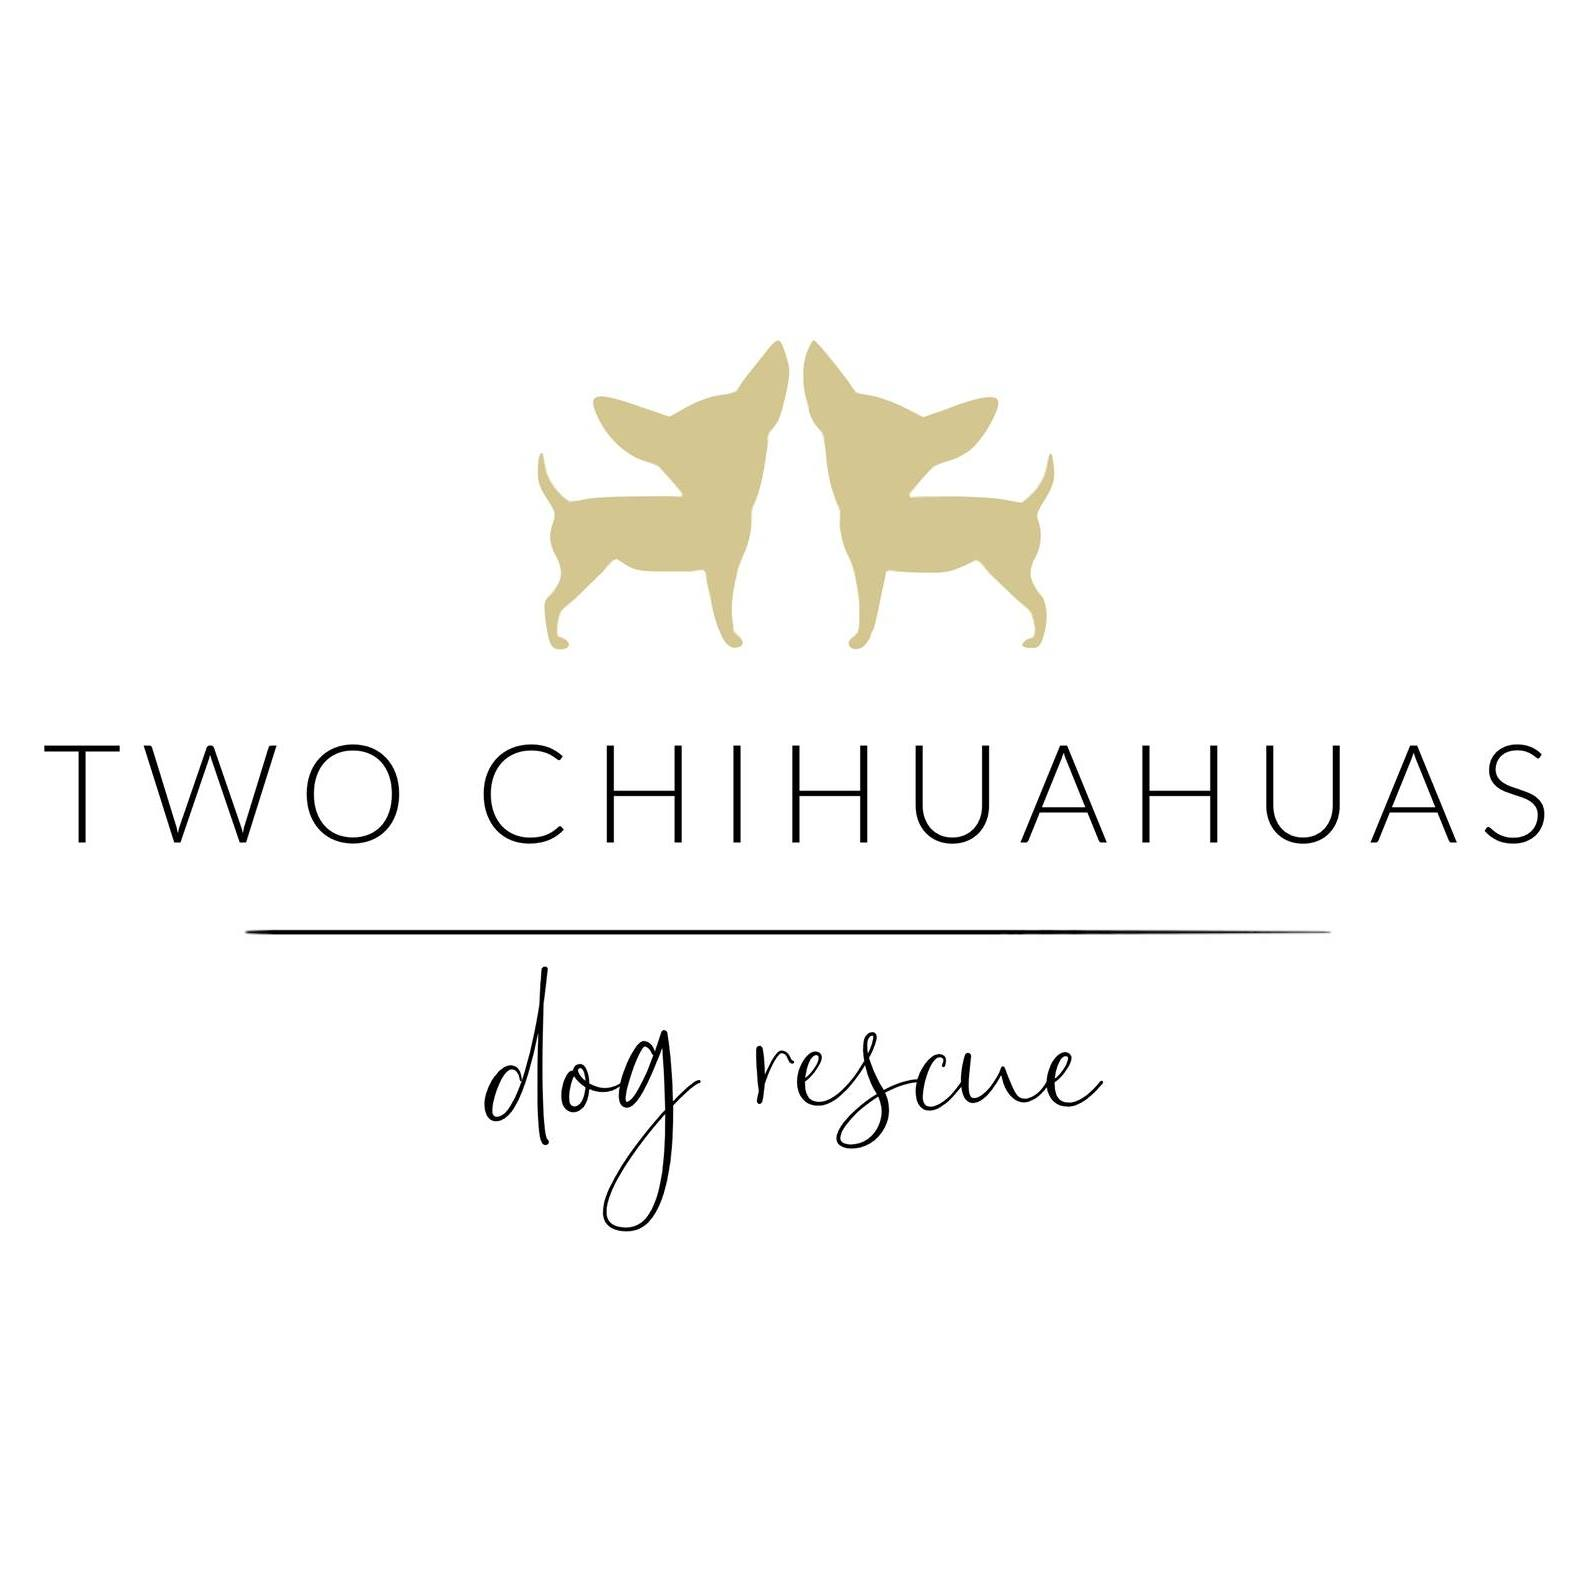 Two Chihuahuas Dog Rescue